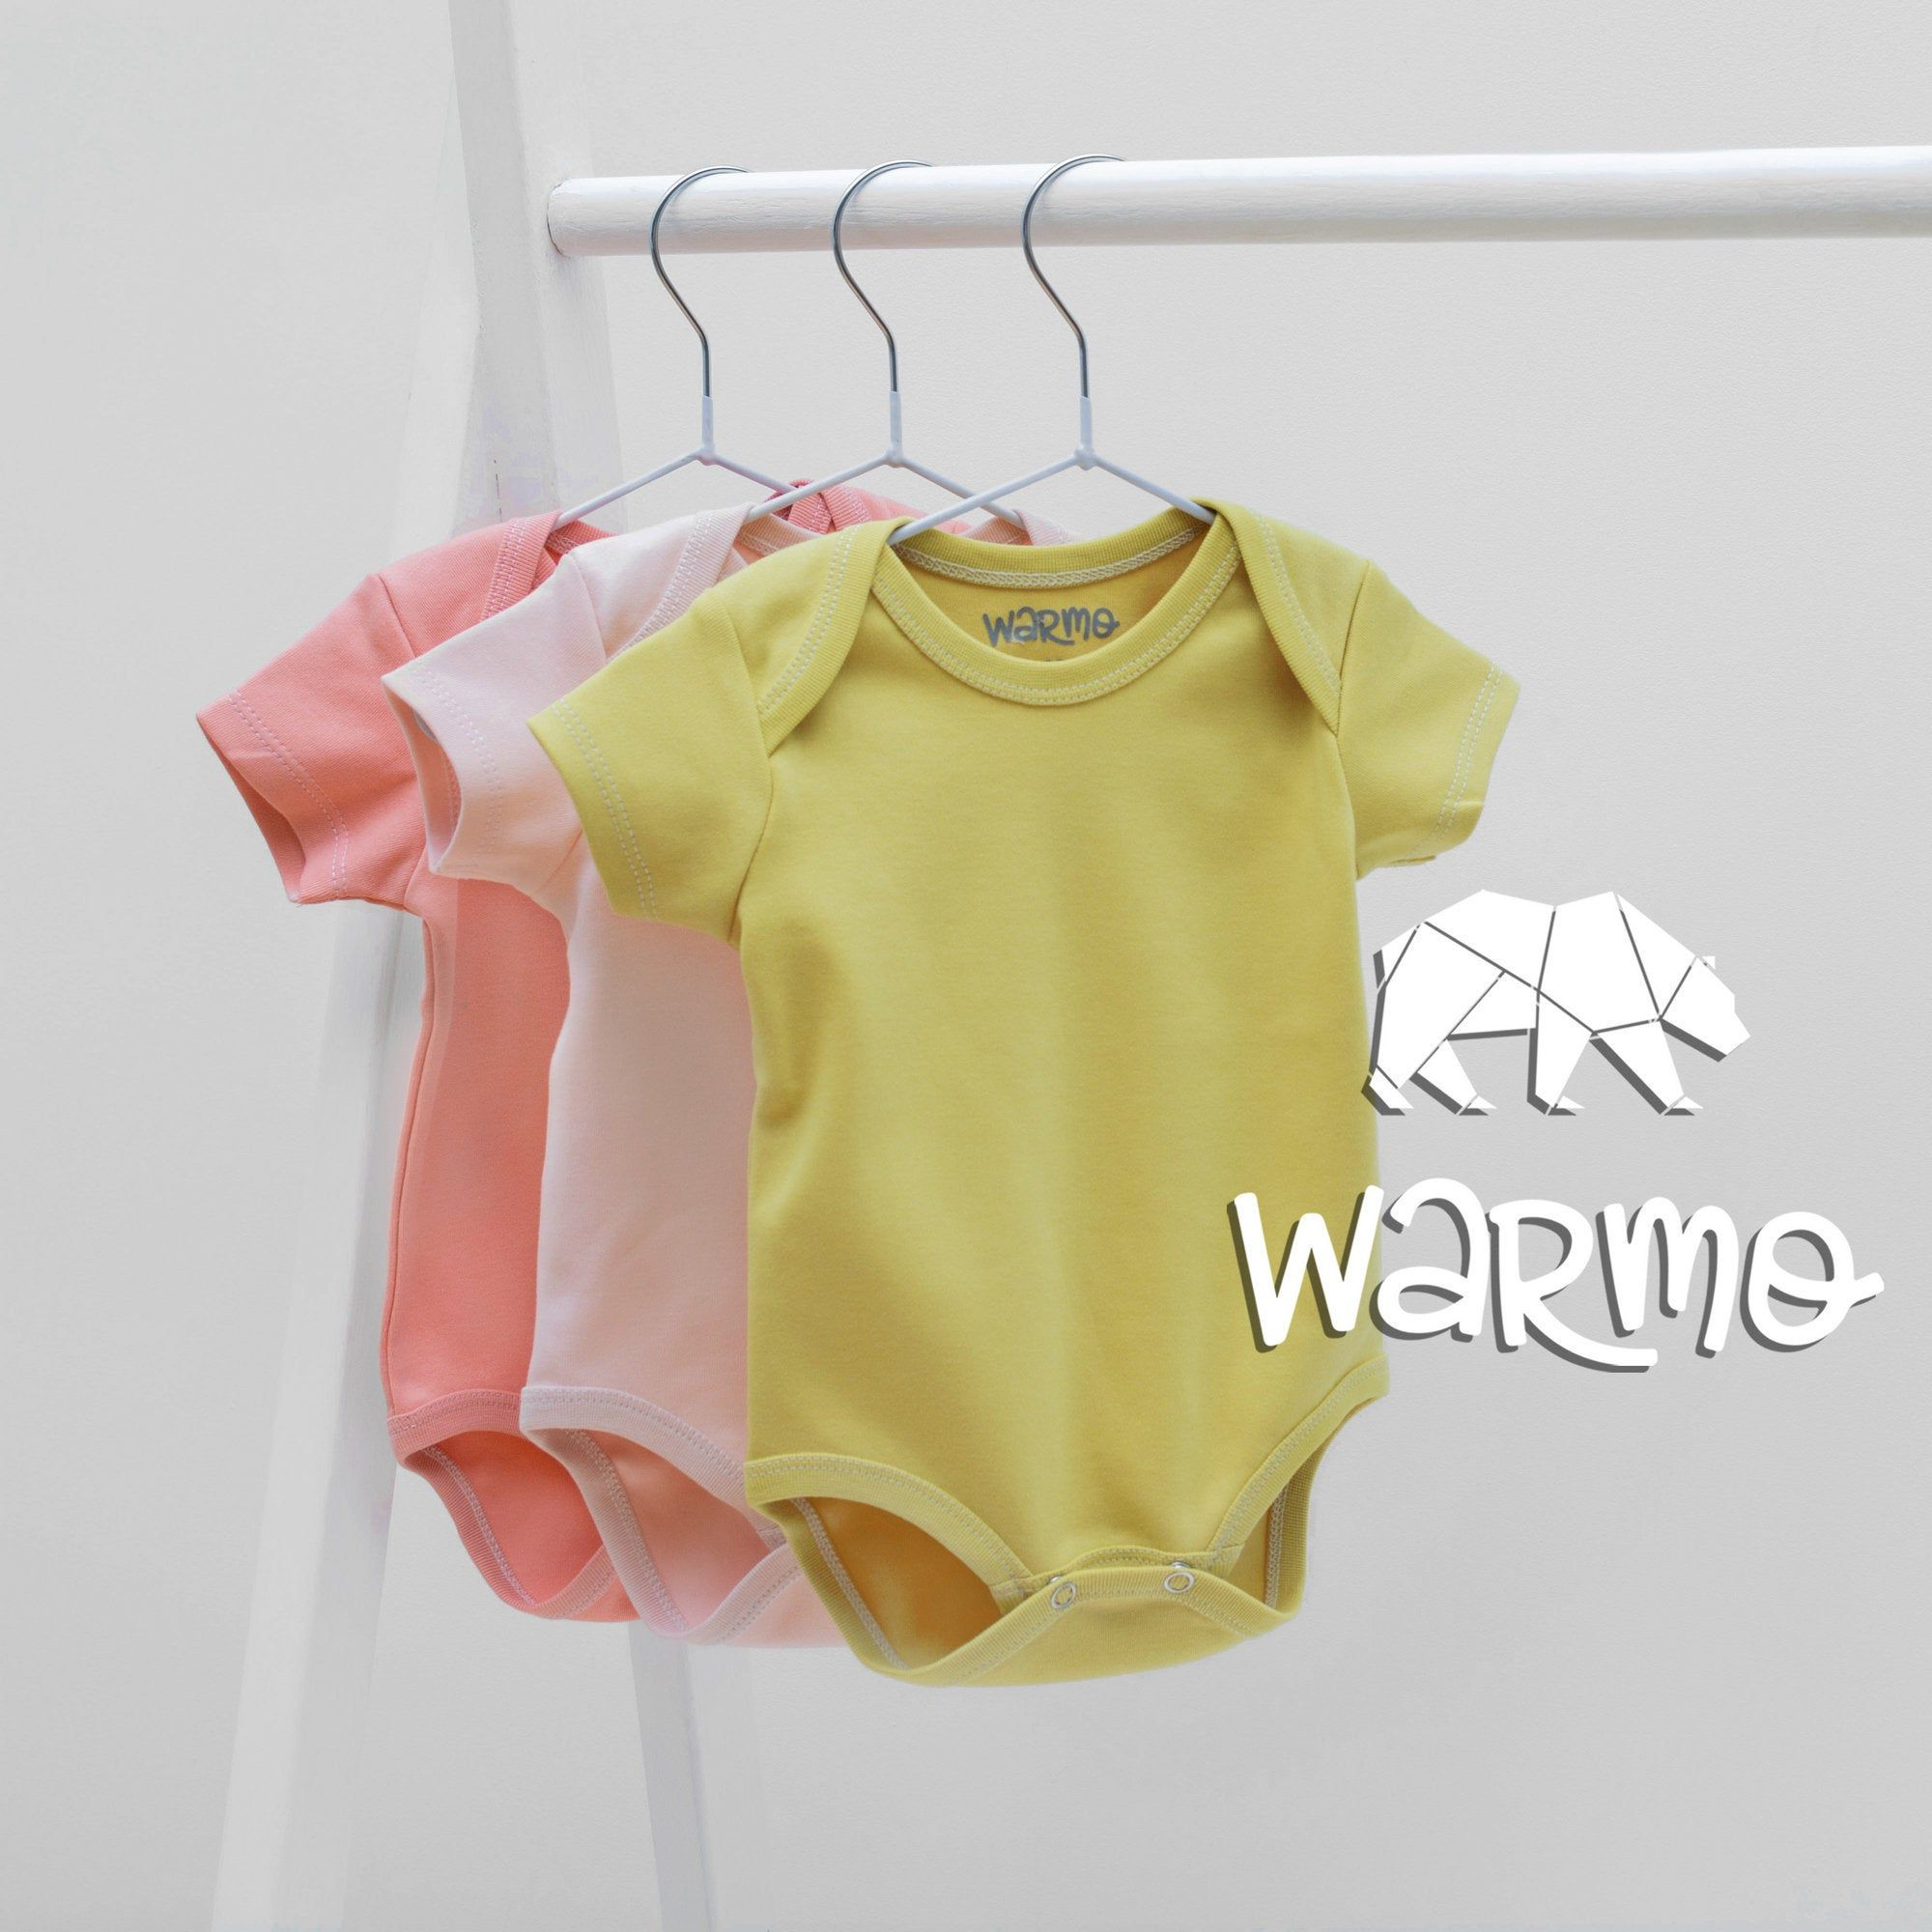 Baby Clothes Baby Full Set Baby Bodysuit Baby Full Suit Babygrow Baby Gift